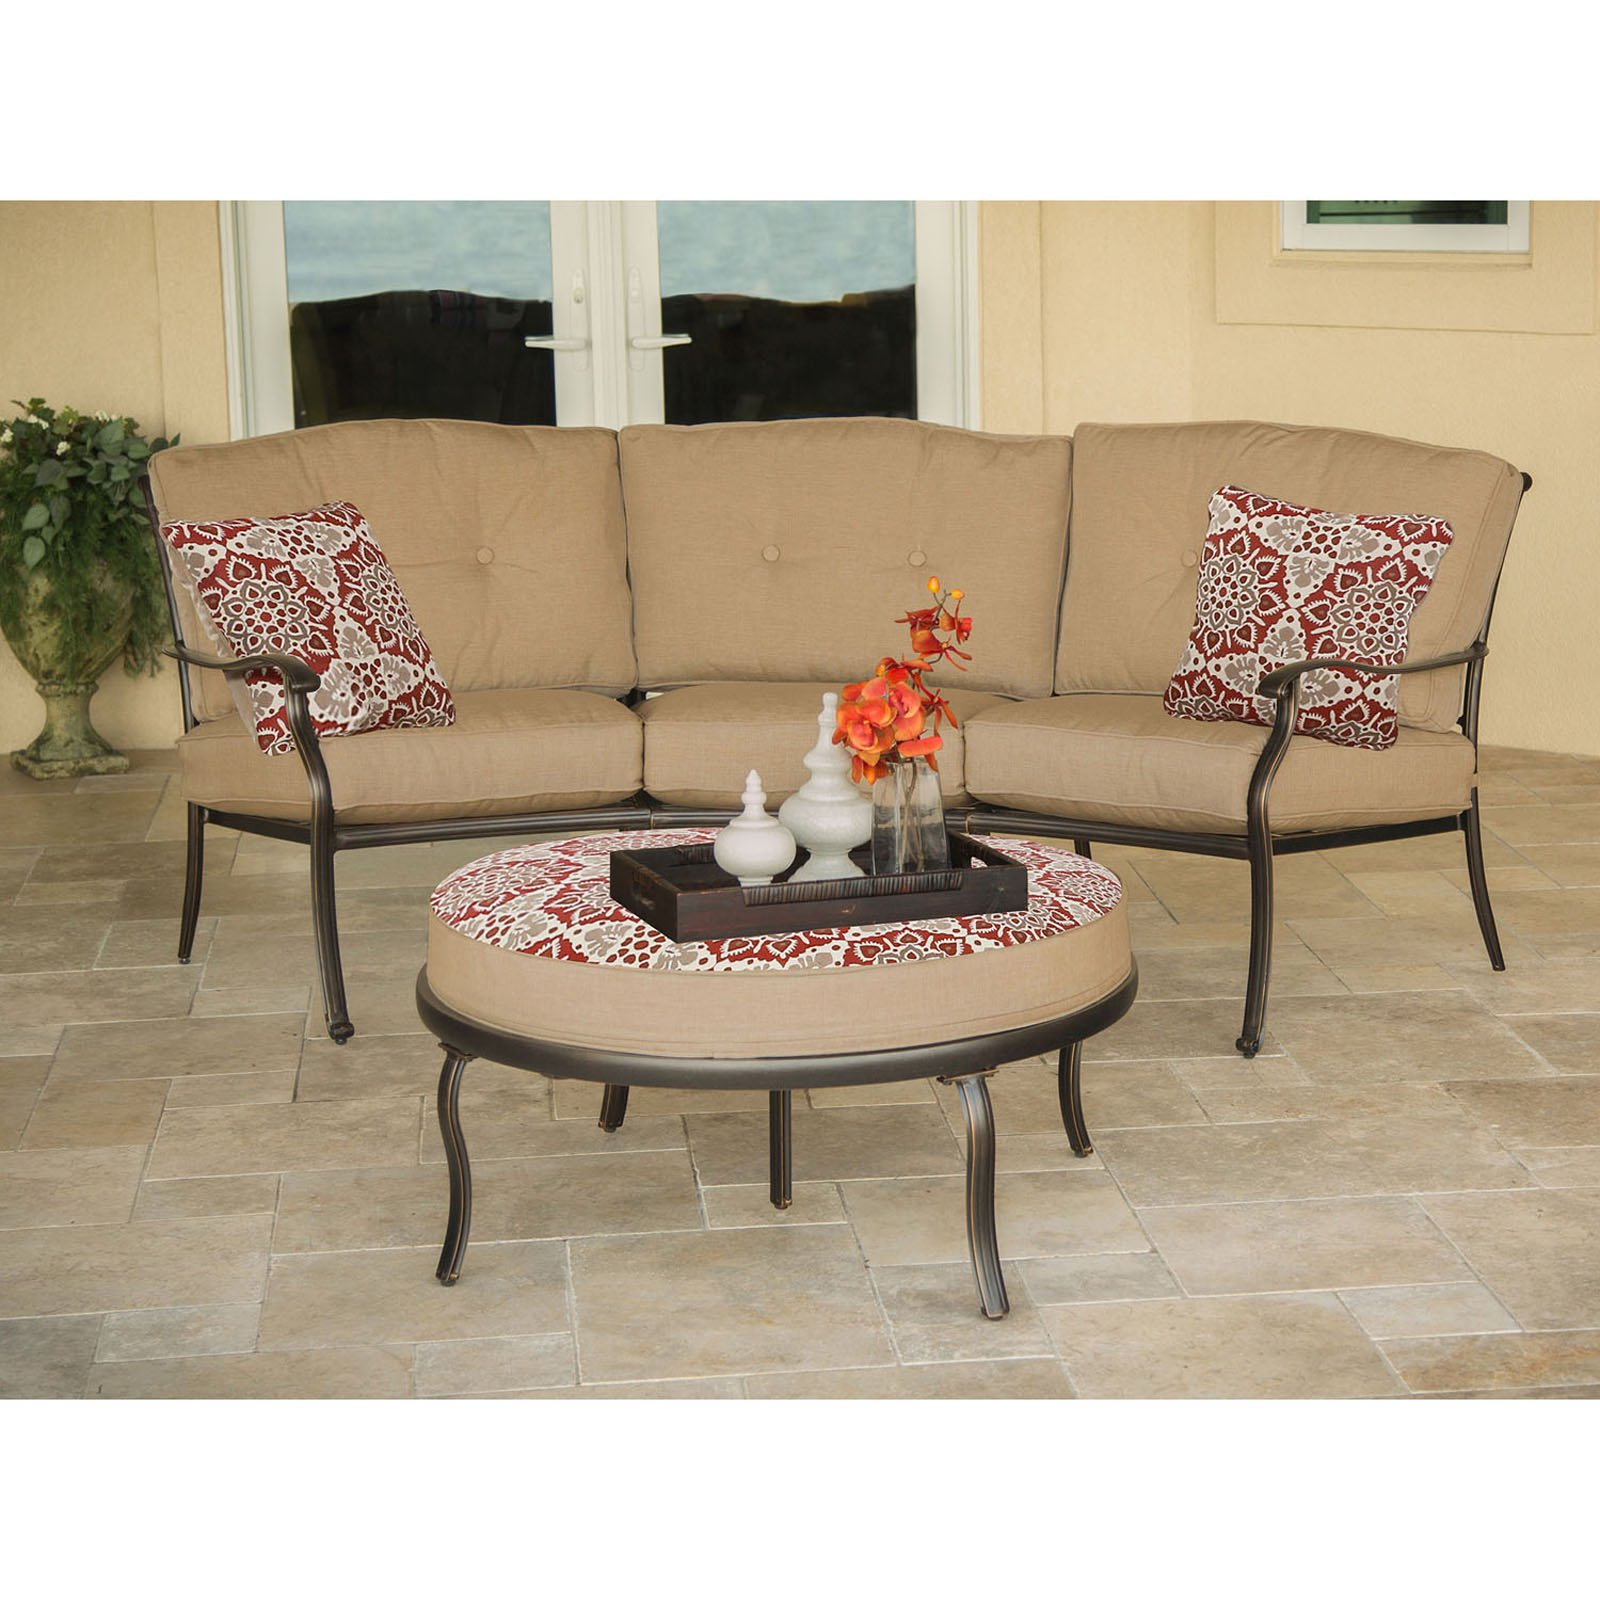 Hanover Outdoor Traditions 2-Piece Patio Set with Reversible Ottoman and Accent Pillows, Natural Oat/Berry